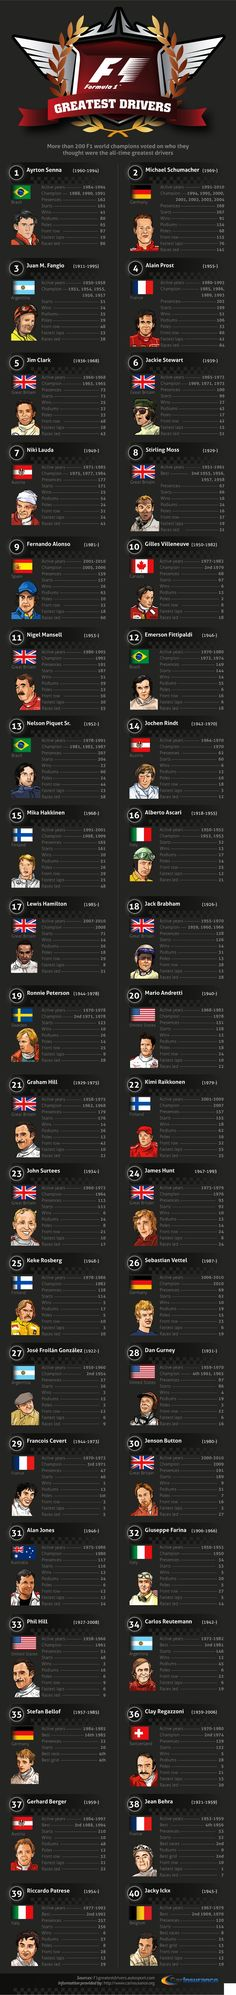 ♠ F1 Greatest Drivers prepared by Autosport, 2010 #F1 #Infographic #Data